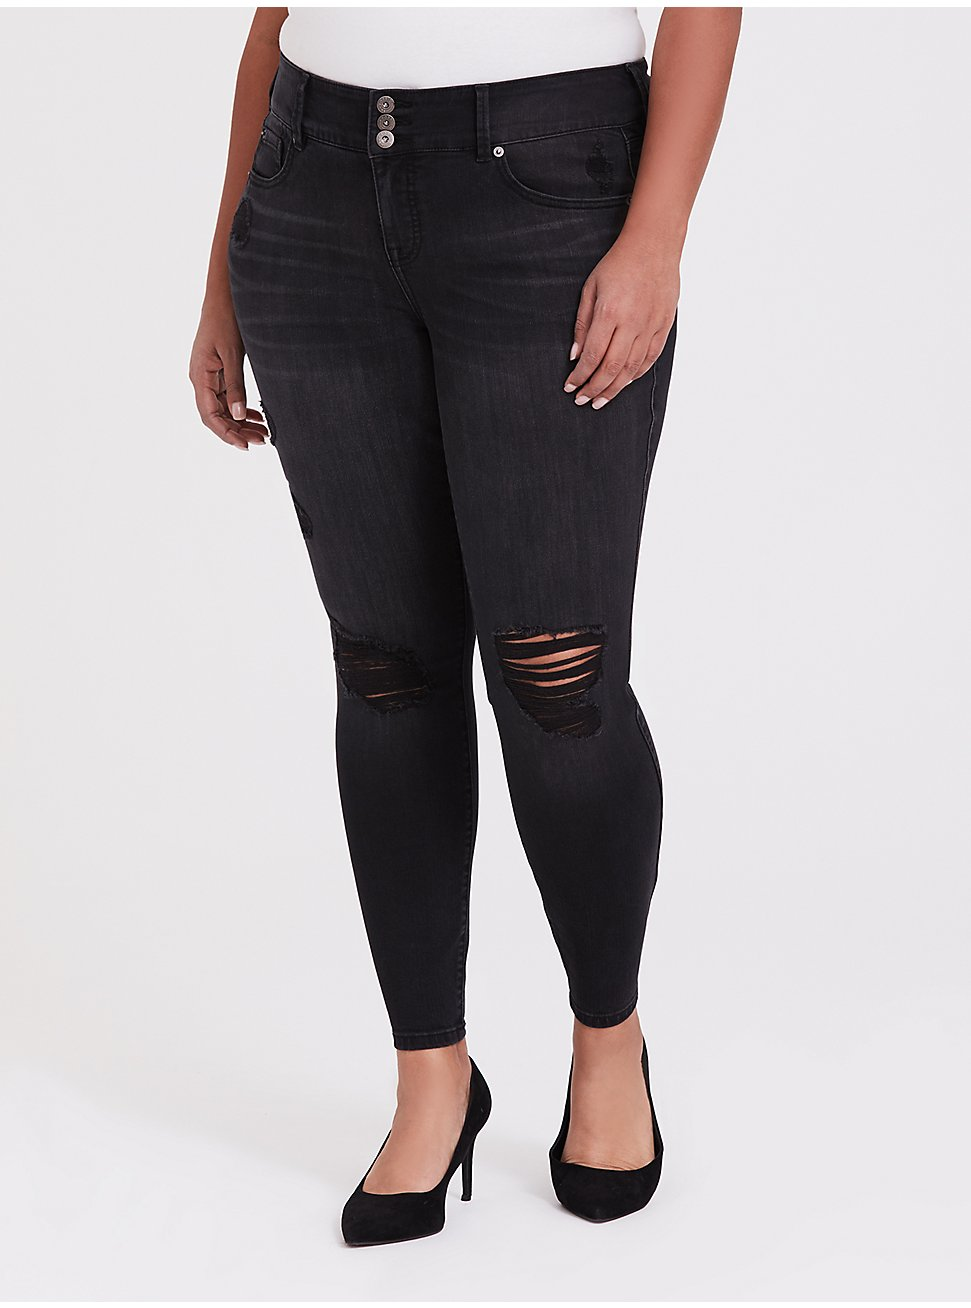 Jegging - Premium Stretch Washed Black, , hi-res